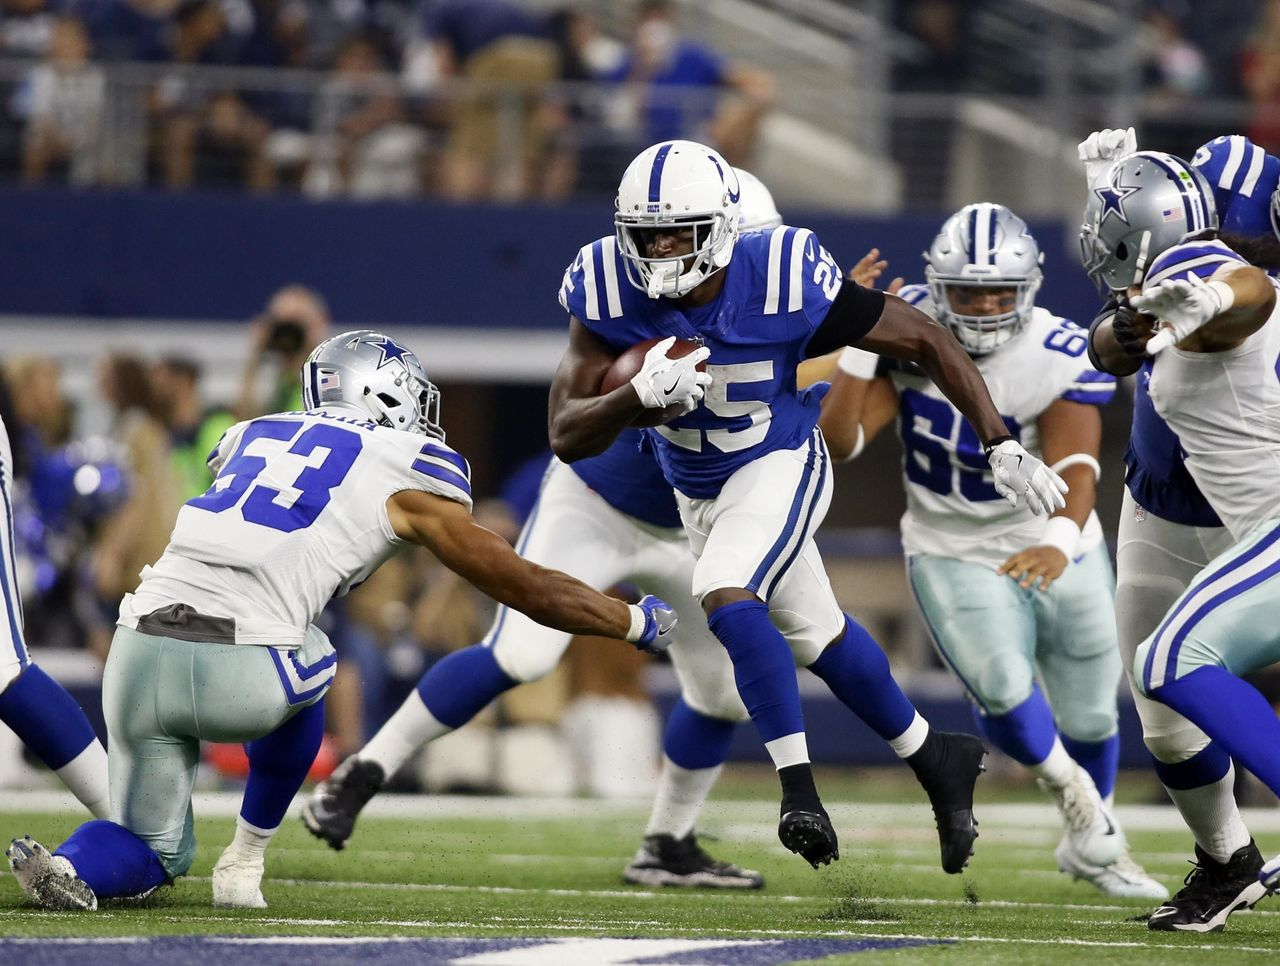 Cropped_2017-08-20t014930z_90431932_nocid_rtrmadp_3_nfl-indianapolis-colts-at-dallas-cowboys